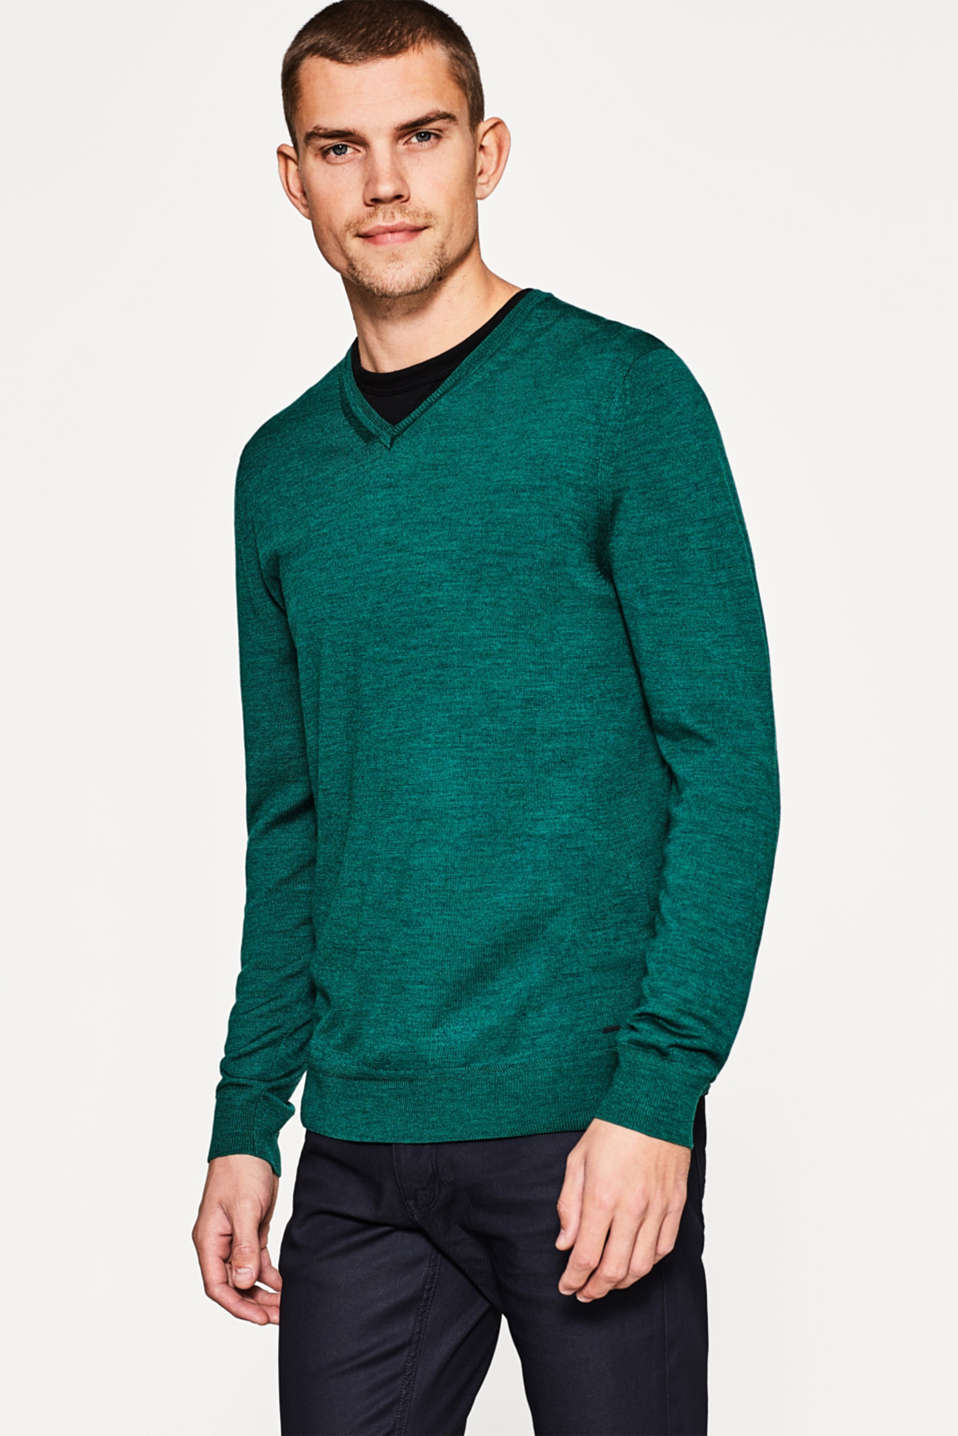 Esprit - Elegant jumper made of pure merino wool